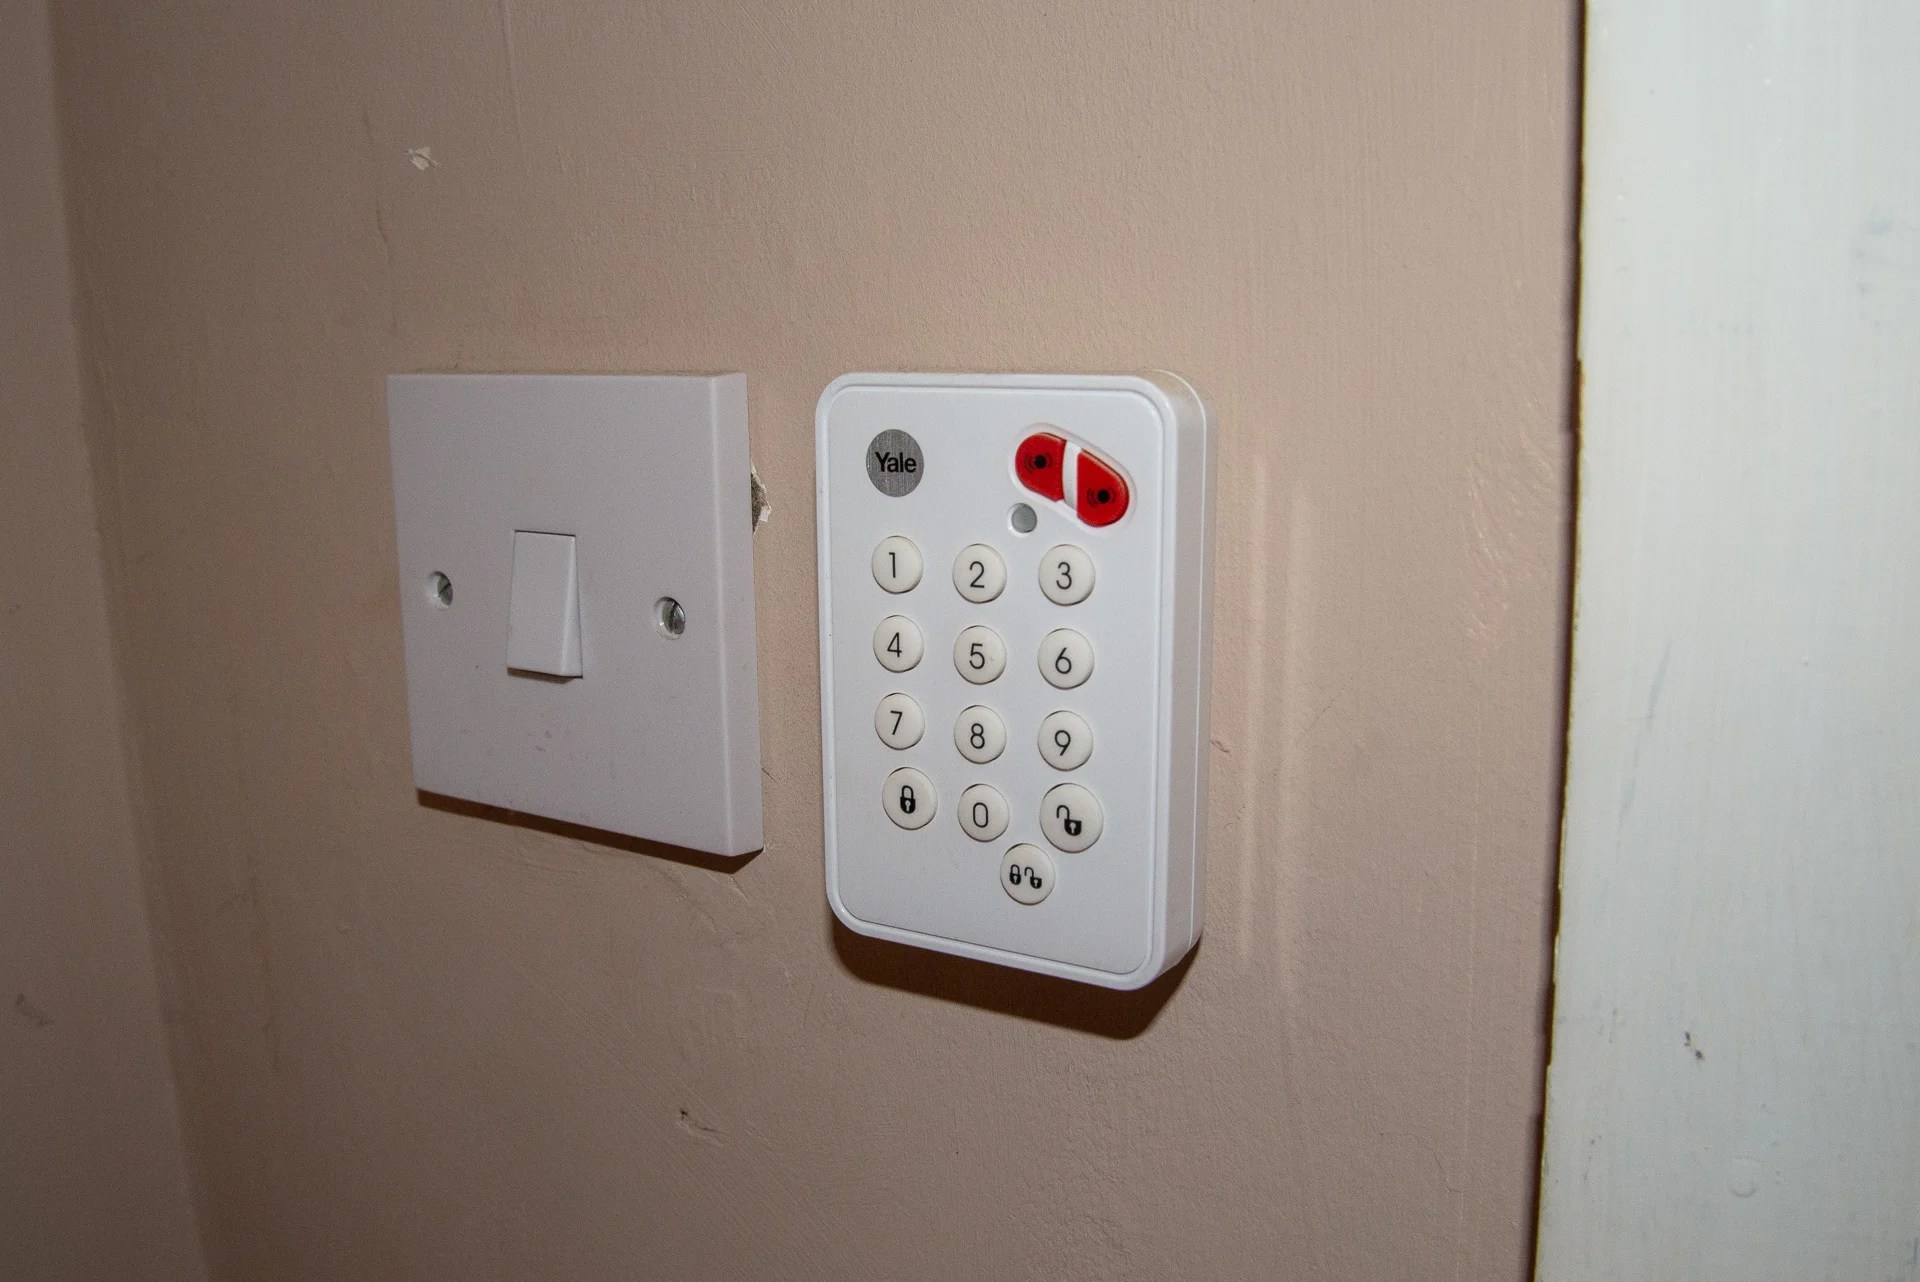 hight resolution of yale smart home alarm keypad